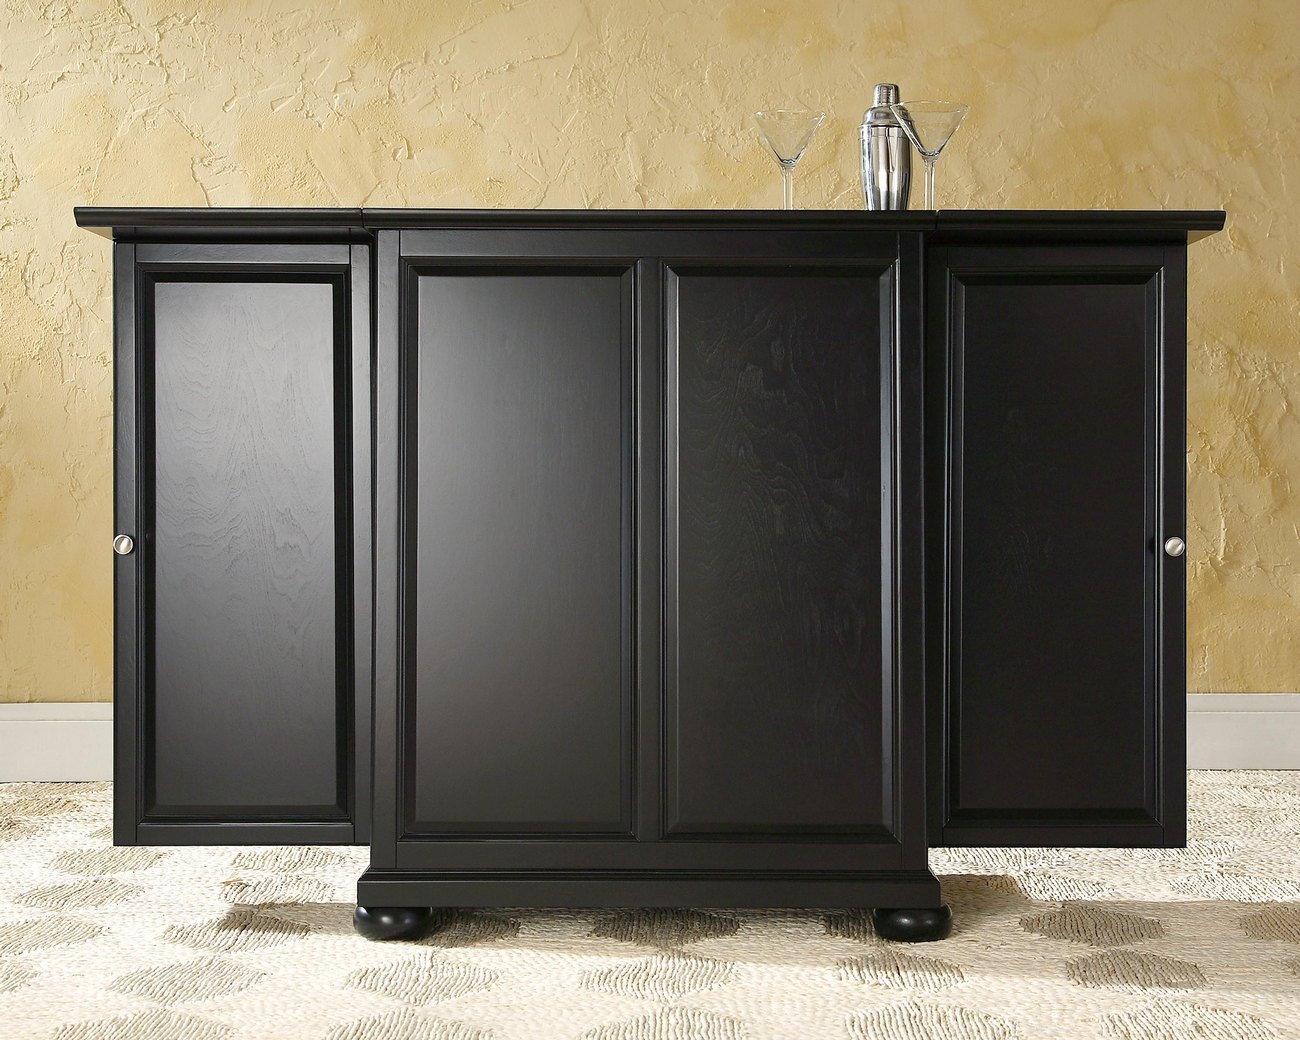 Alexandria Expandable Bar Cabinet in Black Finish - Crosley KF40001ABK